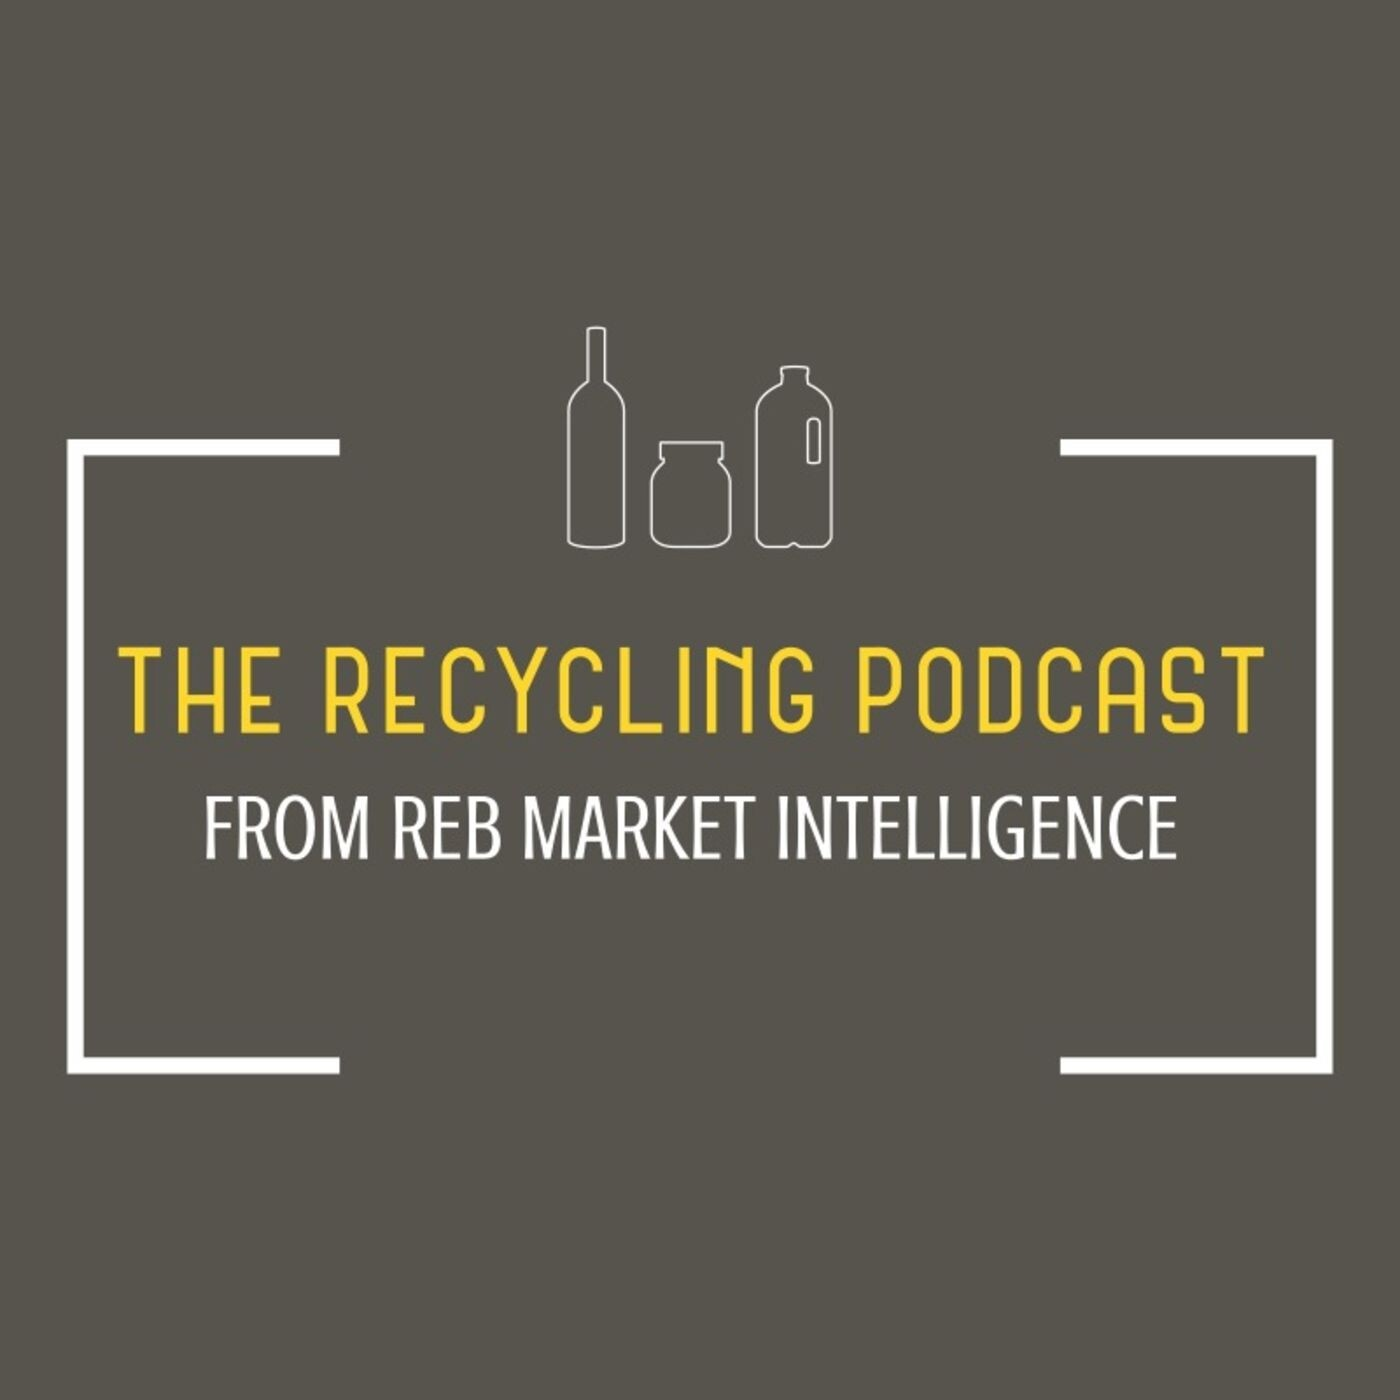 The Recycling Podcast - Episode 1 with Laure Cucuron, Simon Ellin and Adam Read